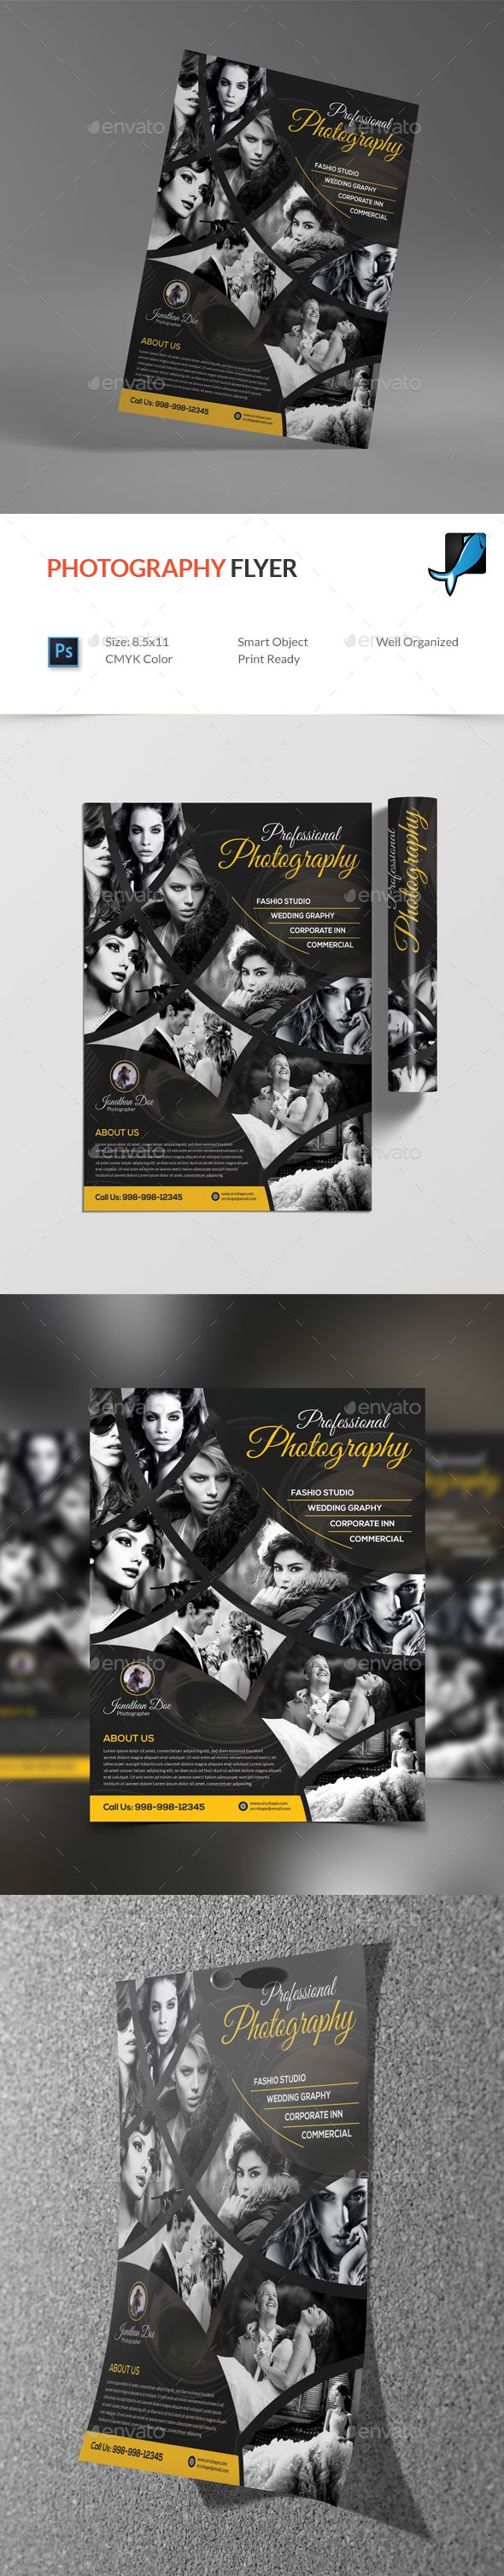 #Photography #Flyer - #Corporate Flyers Download here:  https://graphicriver.net/item/photography-flyer/19524592?ref=alena994